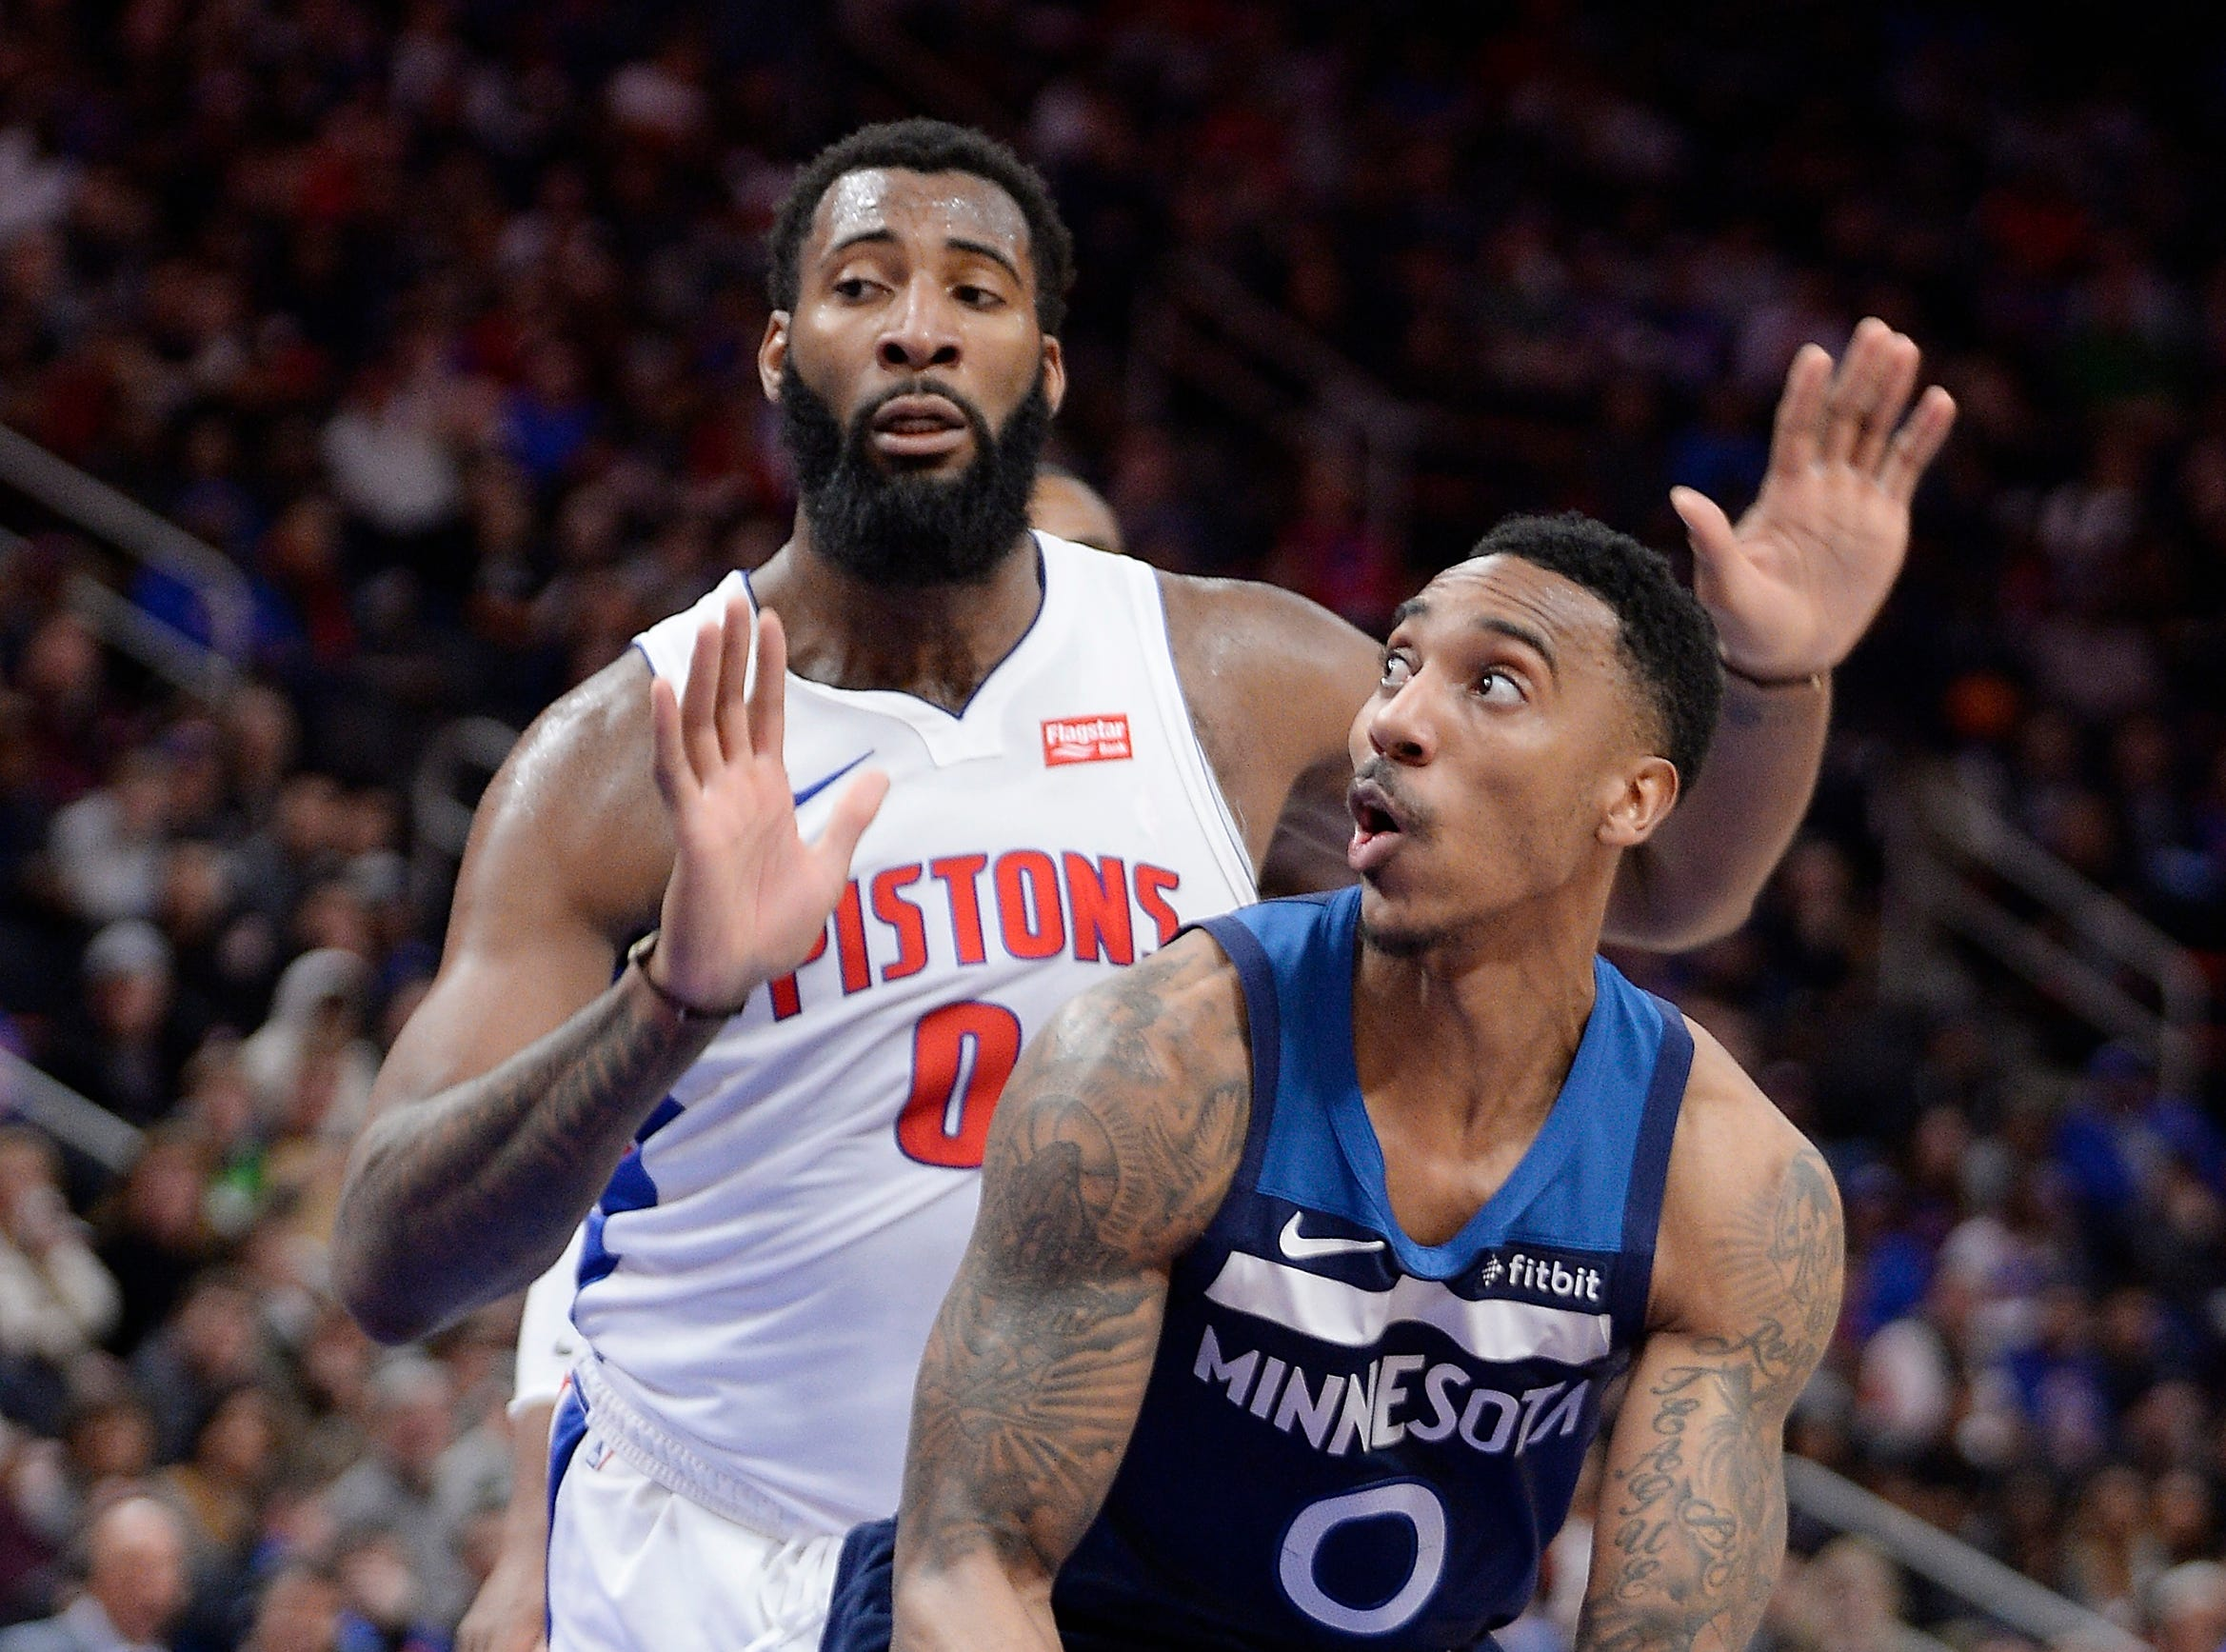 Timberwolves' Jeff Teague looks for room around Pistons' Andre Drummond in the third quarter.